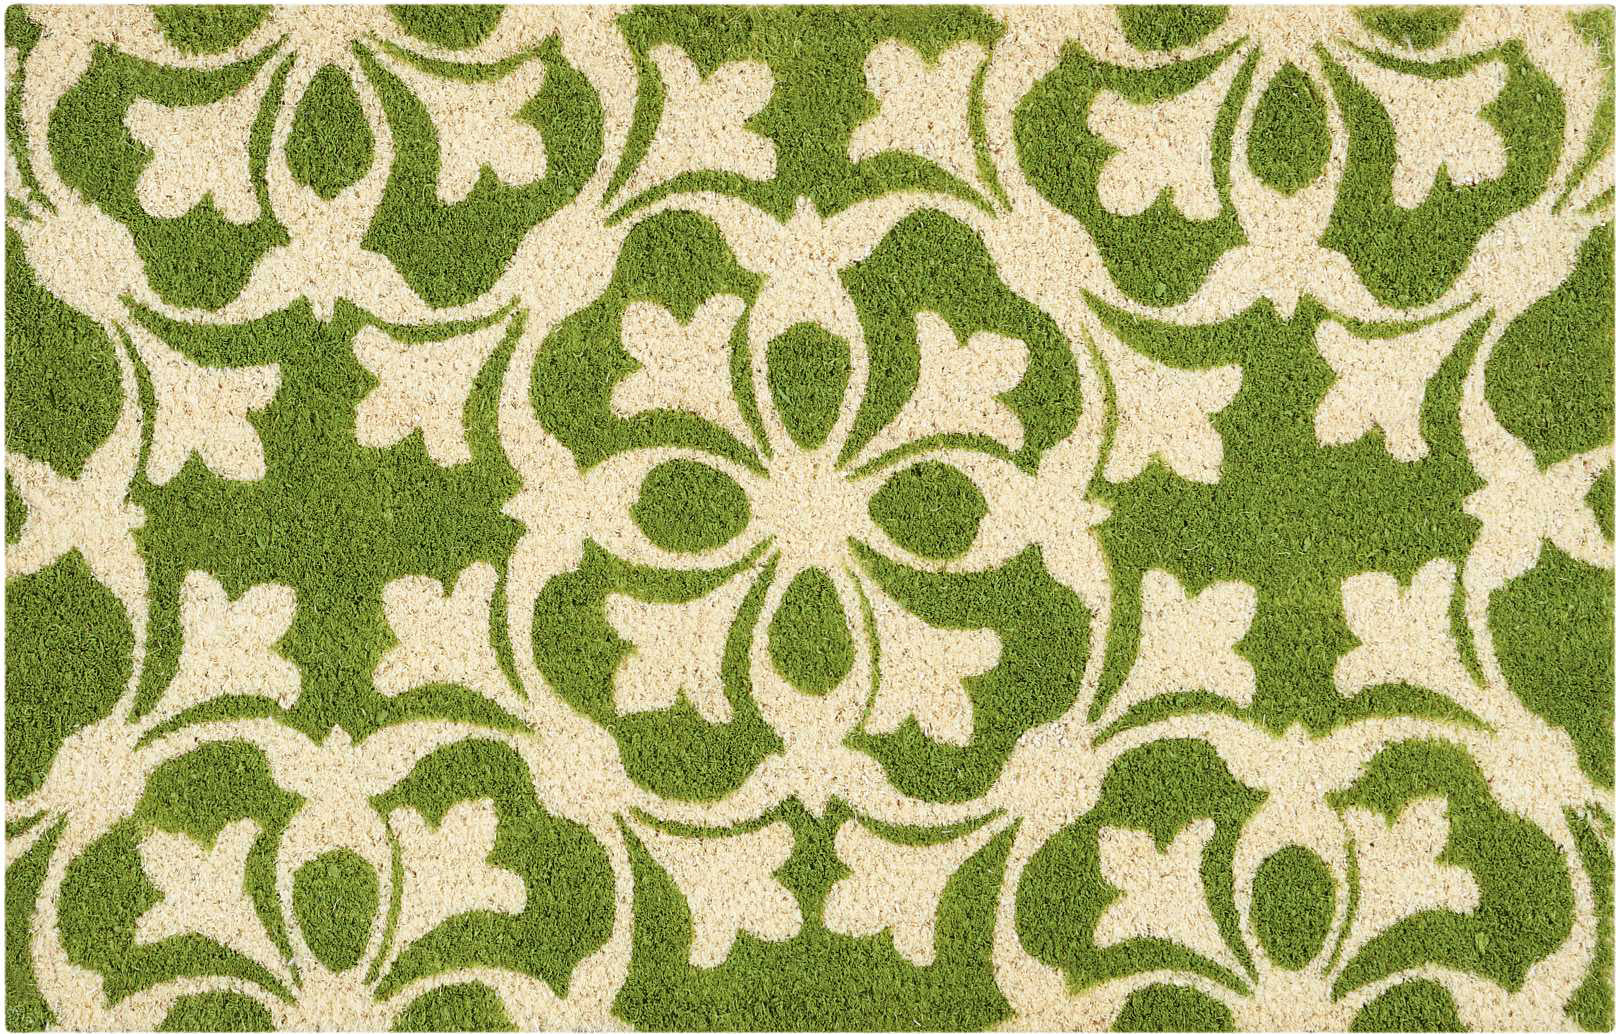 Nourison Wav17 Greetings WGT29 Green Area Rug by Waverly main image